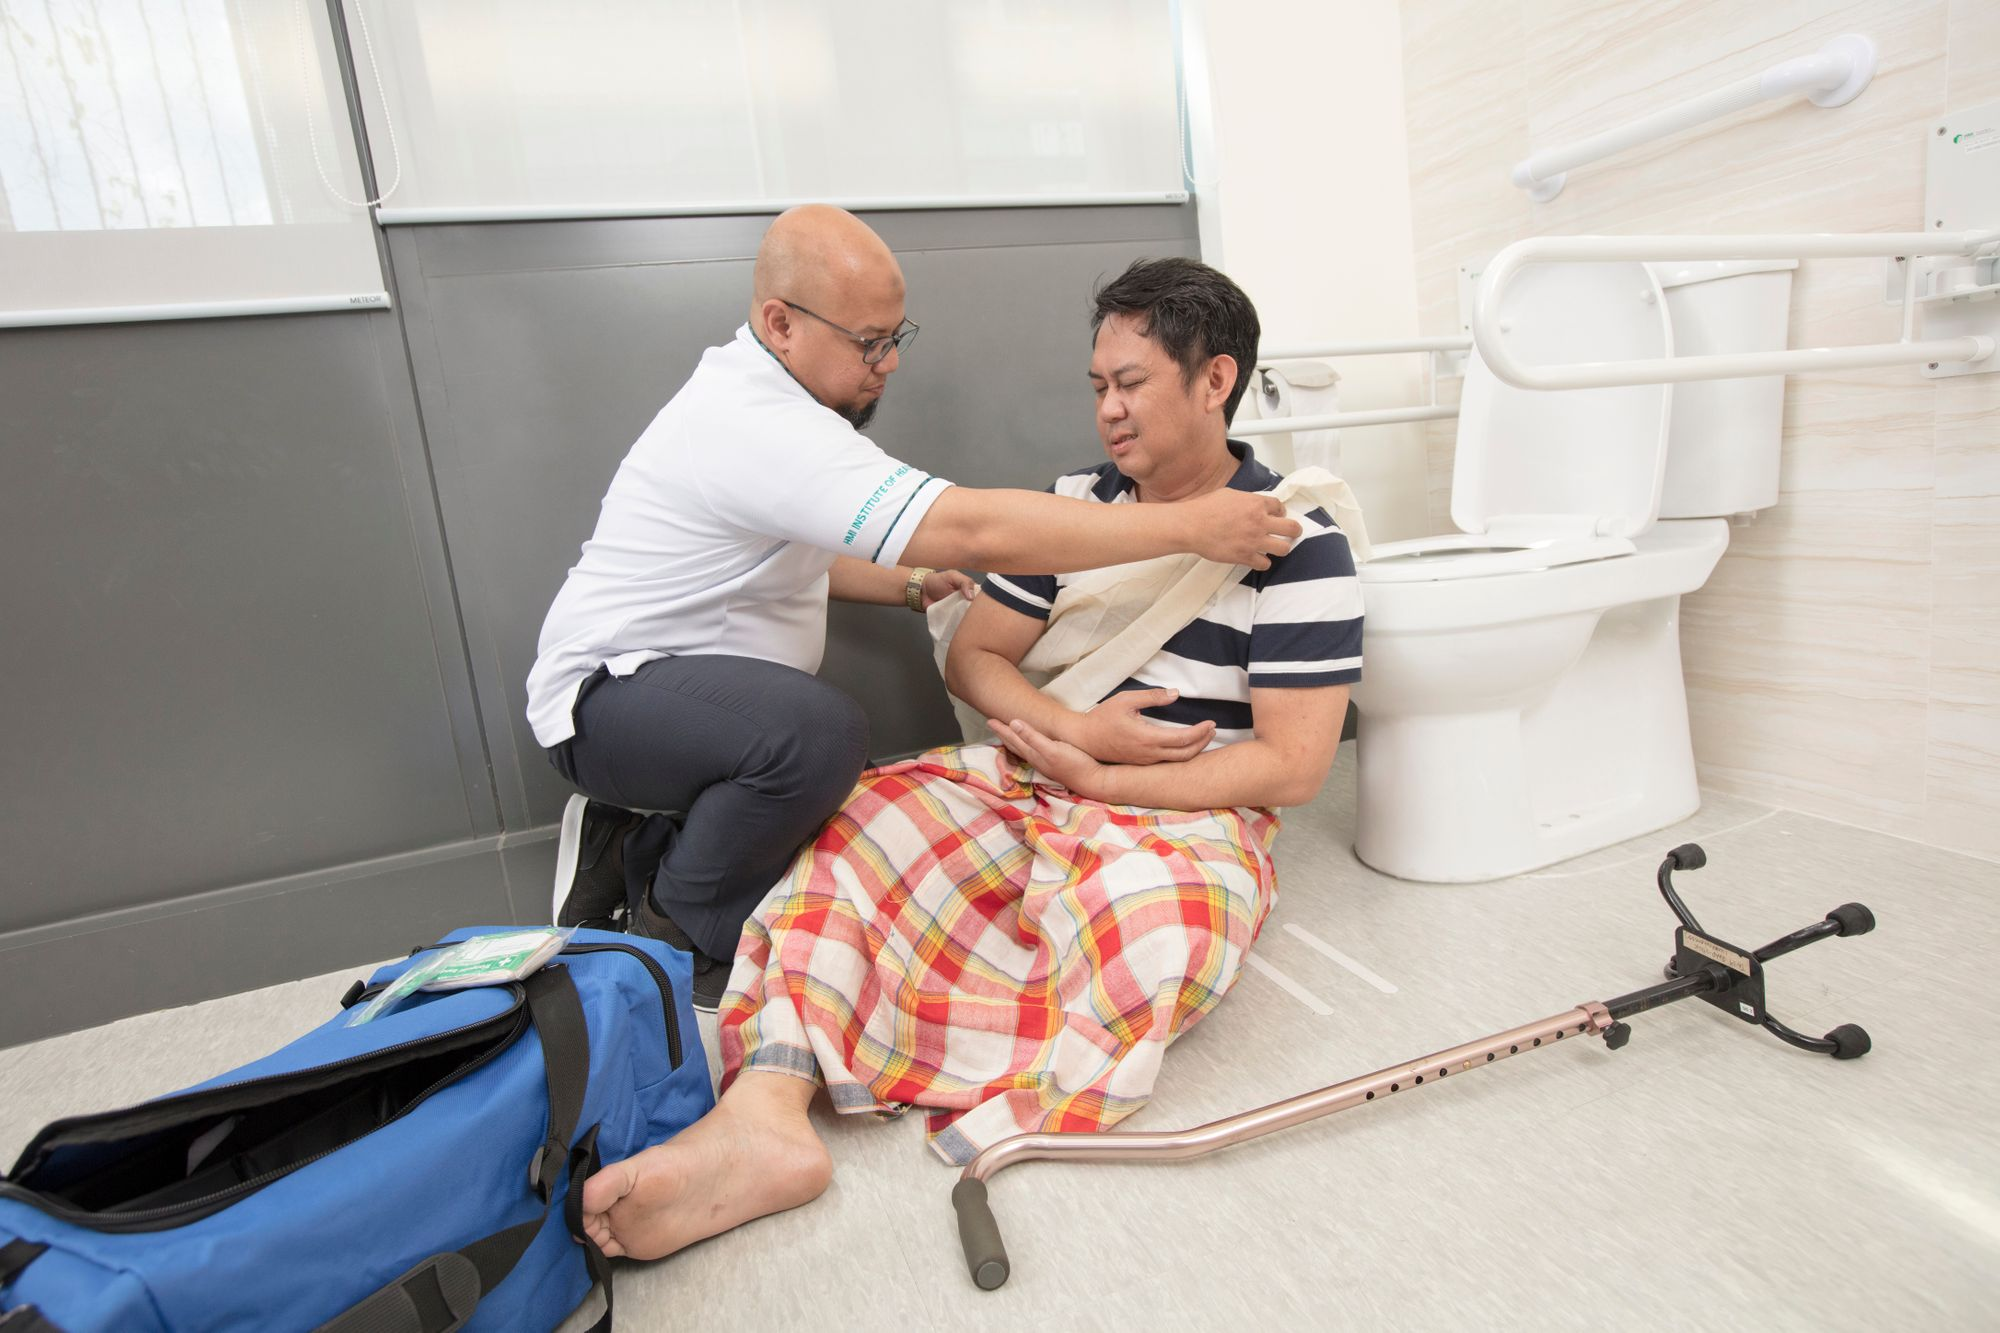 Healthcare Training courses at HMI Institute of Health Sciences, an AIC-appointed Learning Institute for Community Care professionals in Singapore